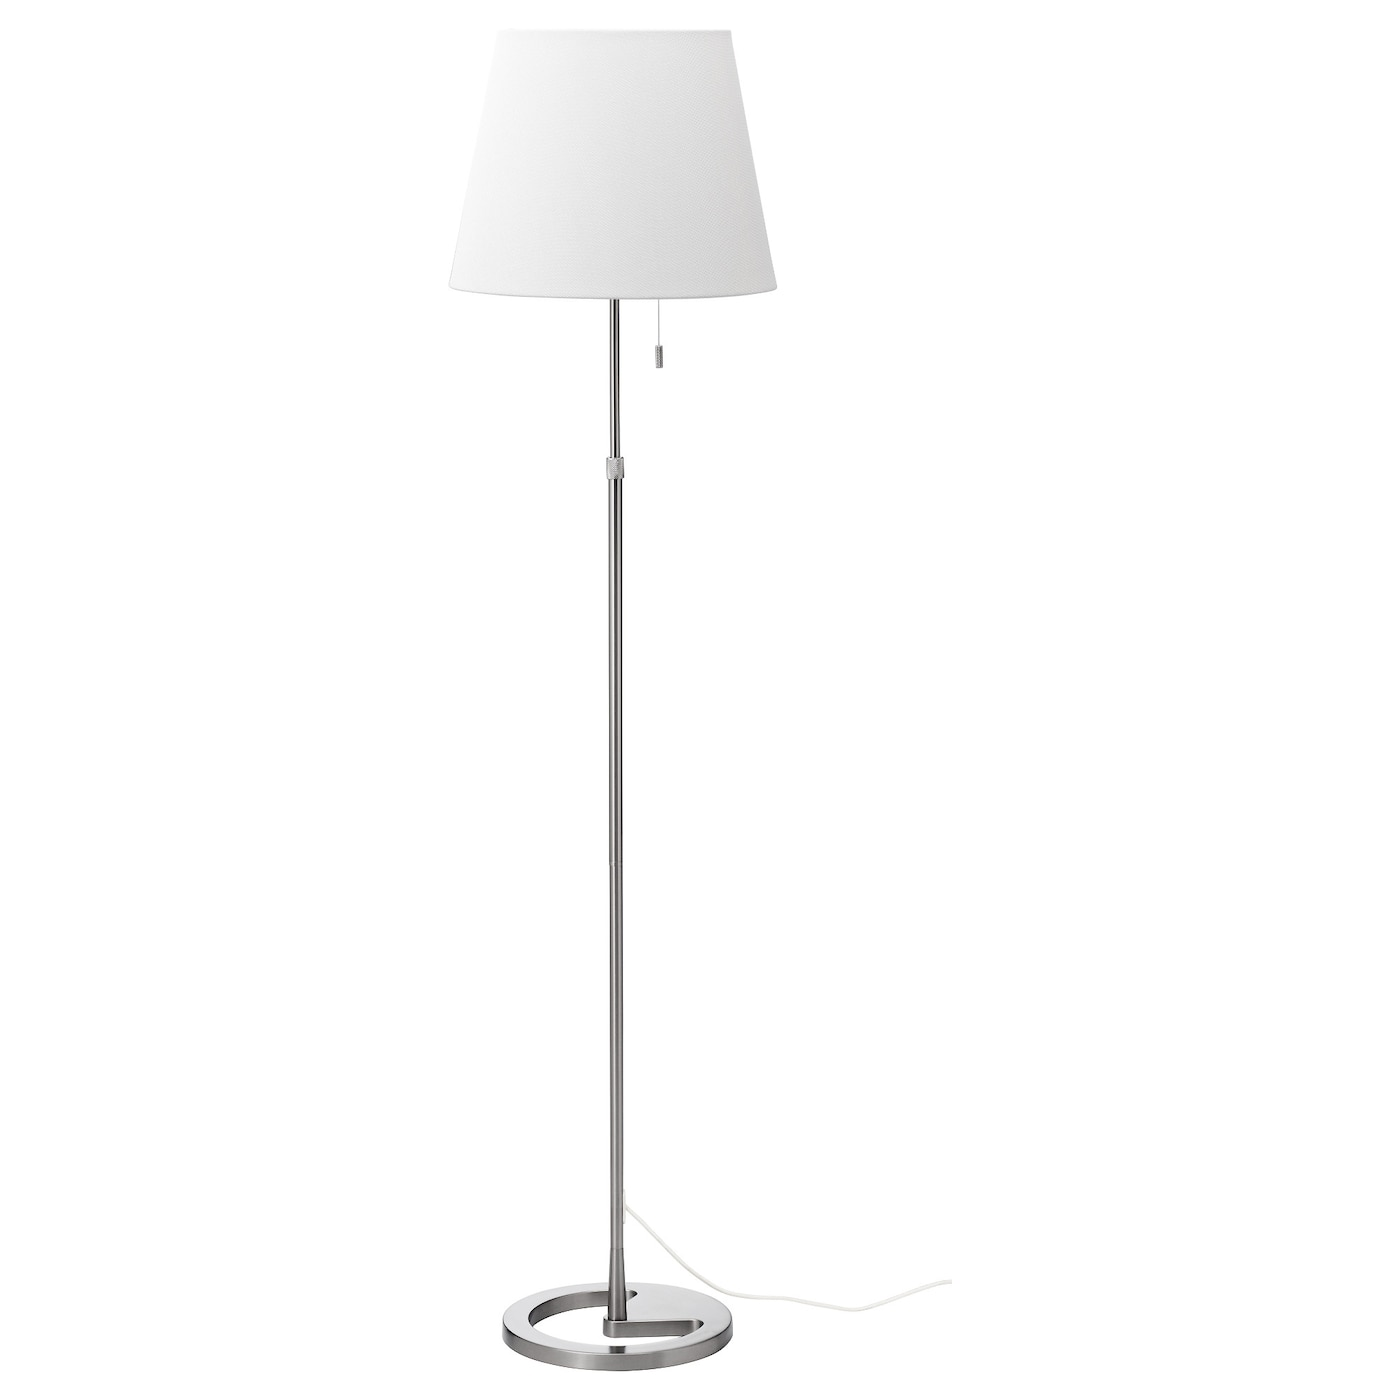 Ikea Schreibtisch Dunkelbraun ~ IKEA NYFORS floor lamp The height is adjustable to suit your lighting